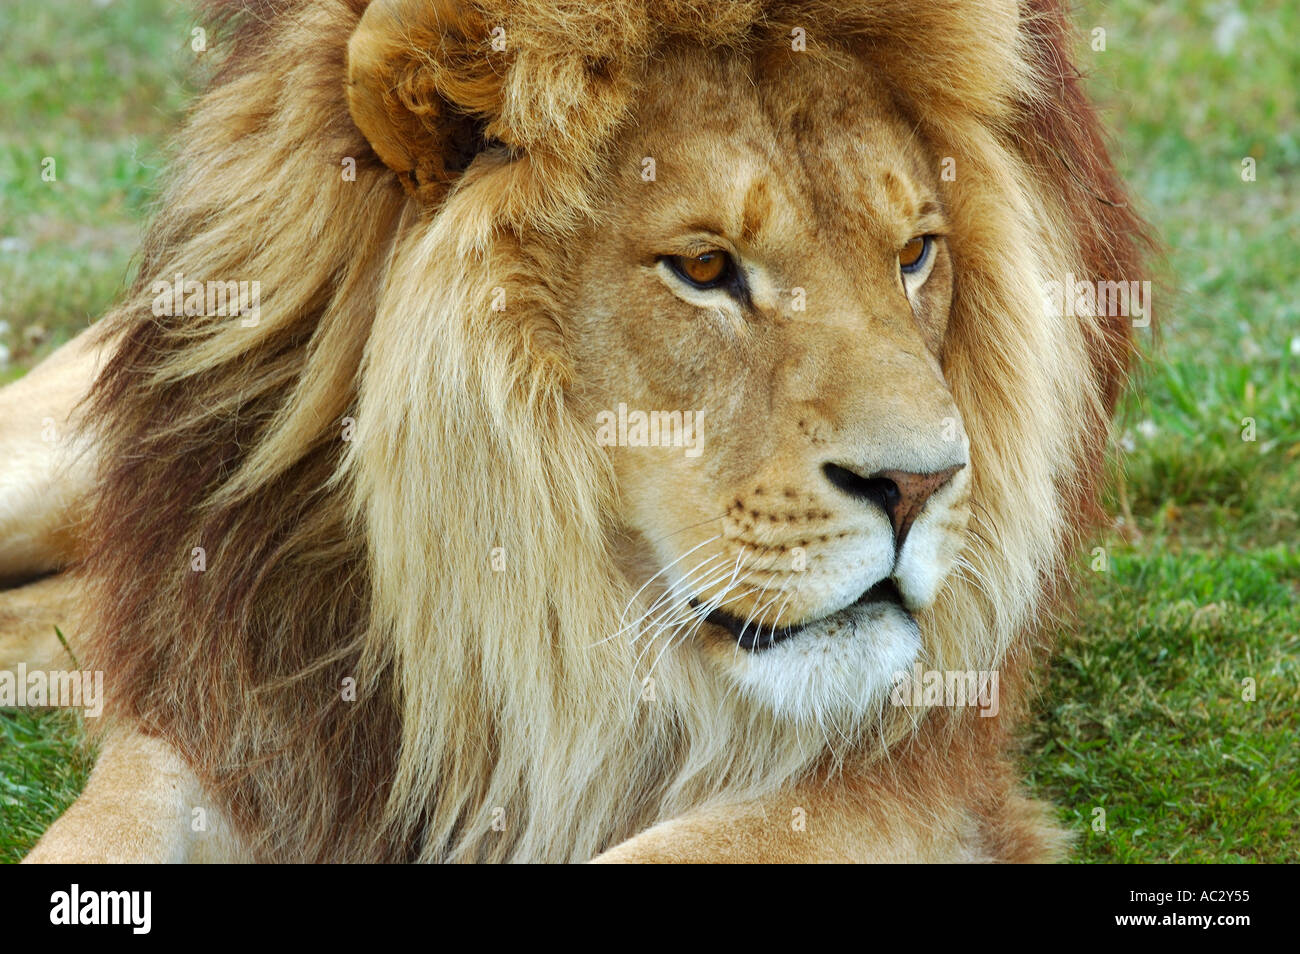 Face of male lion lying on grass - Stock Image